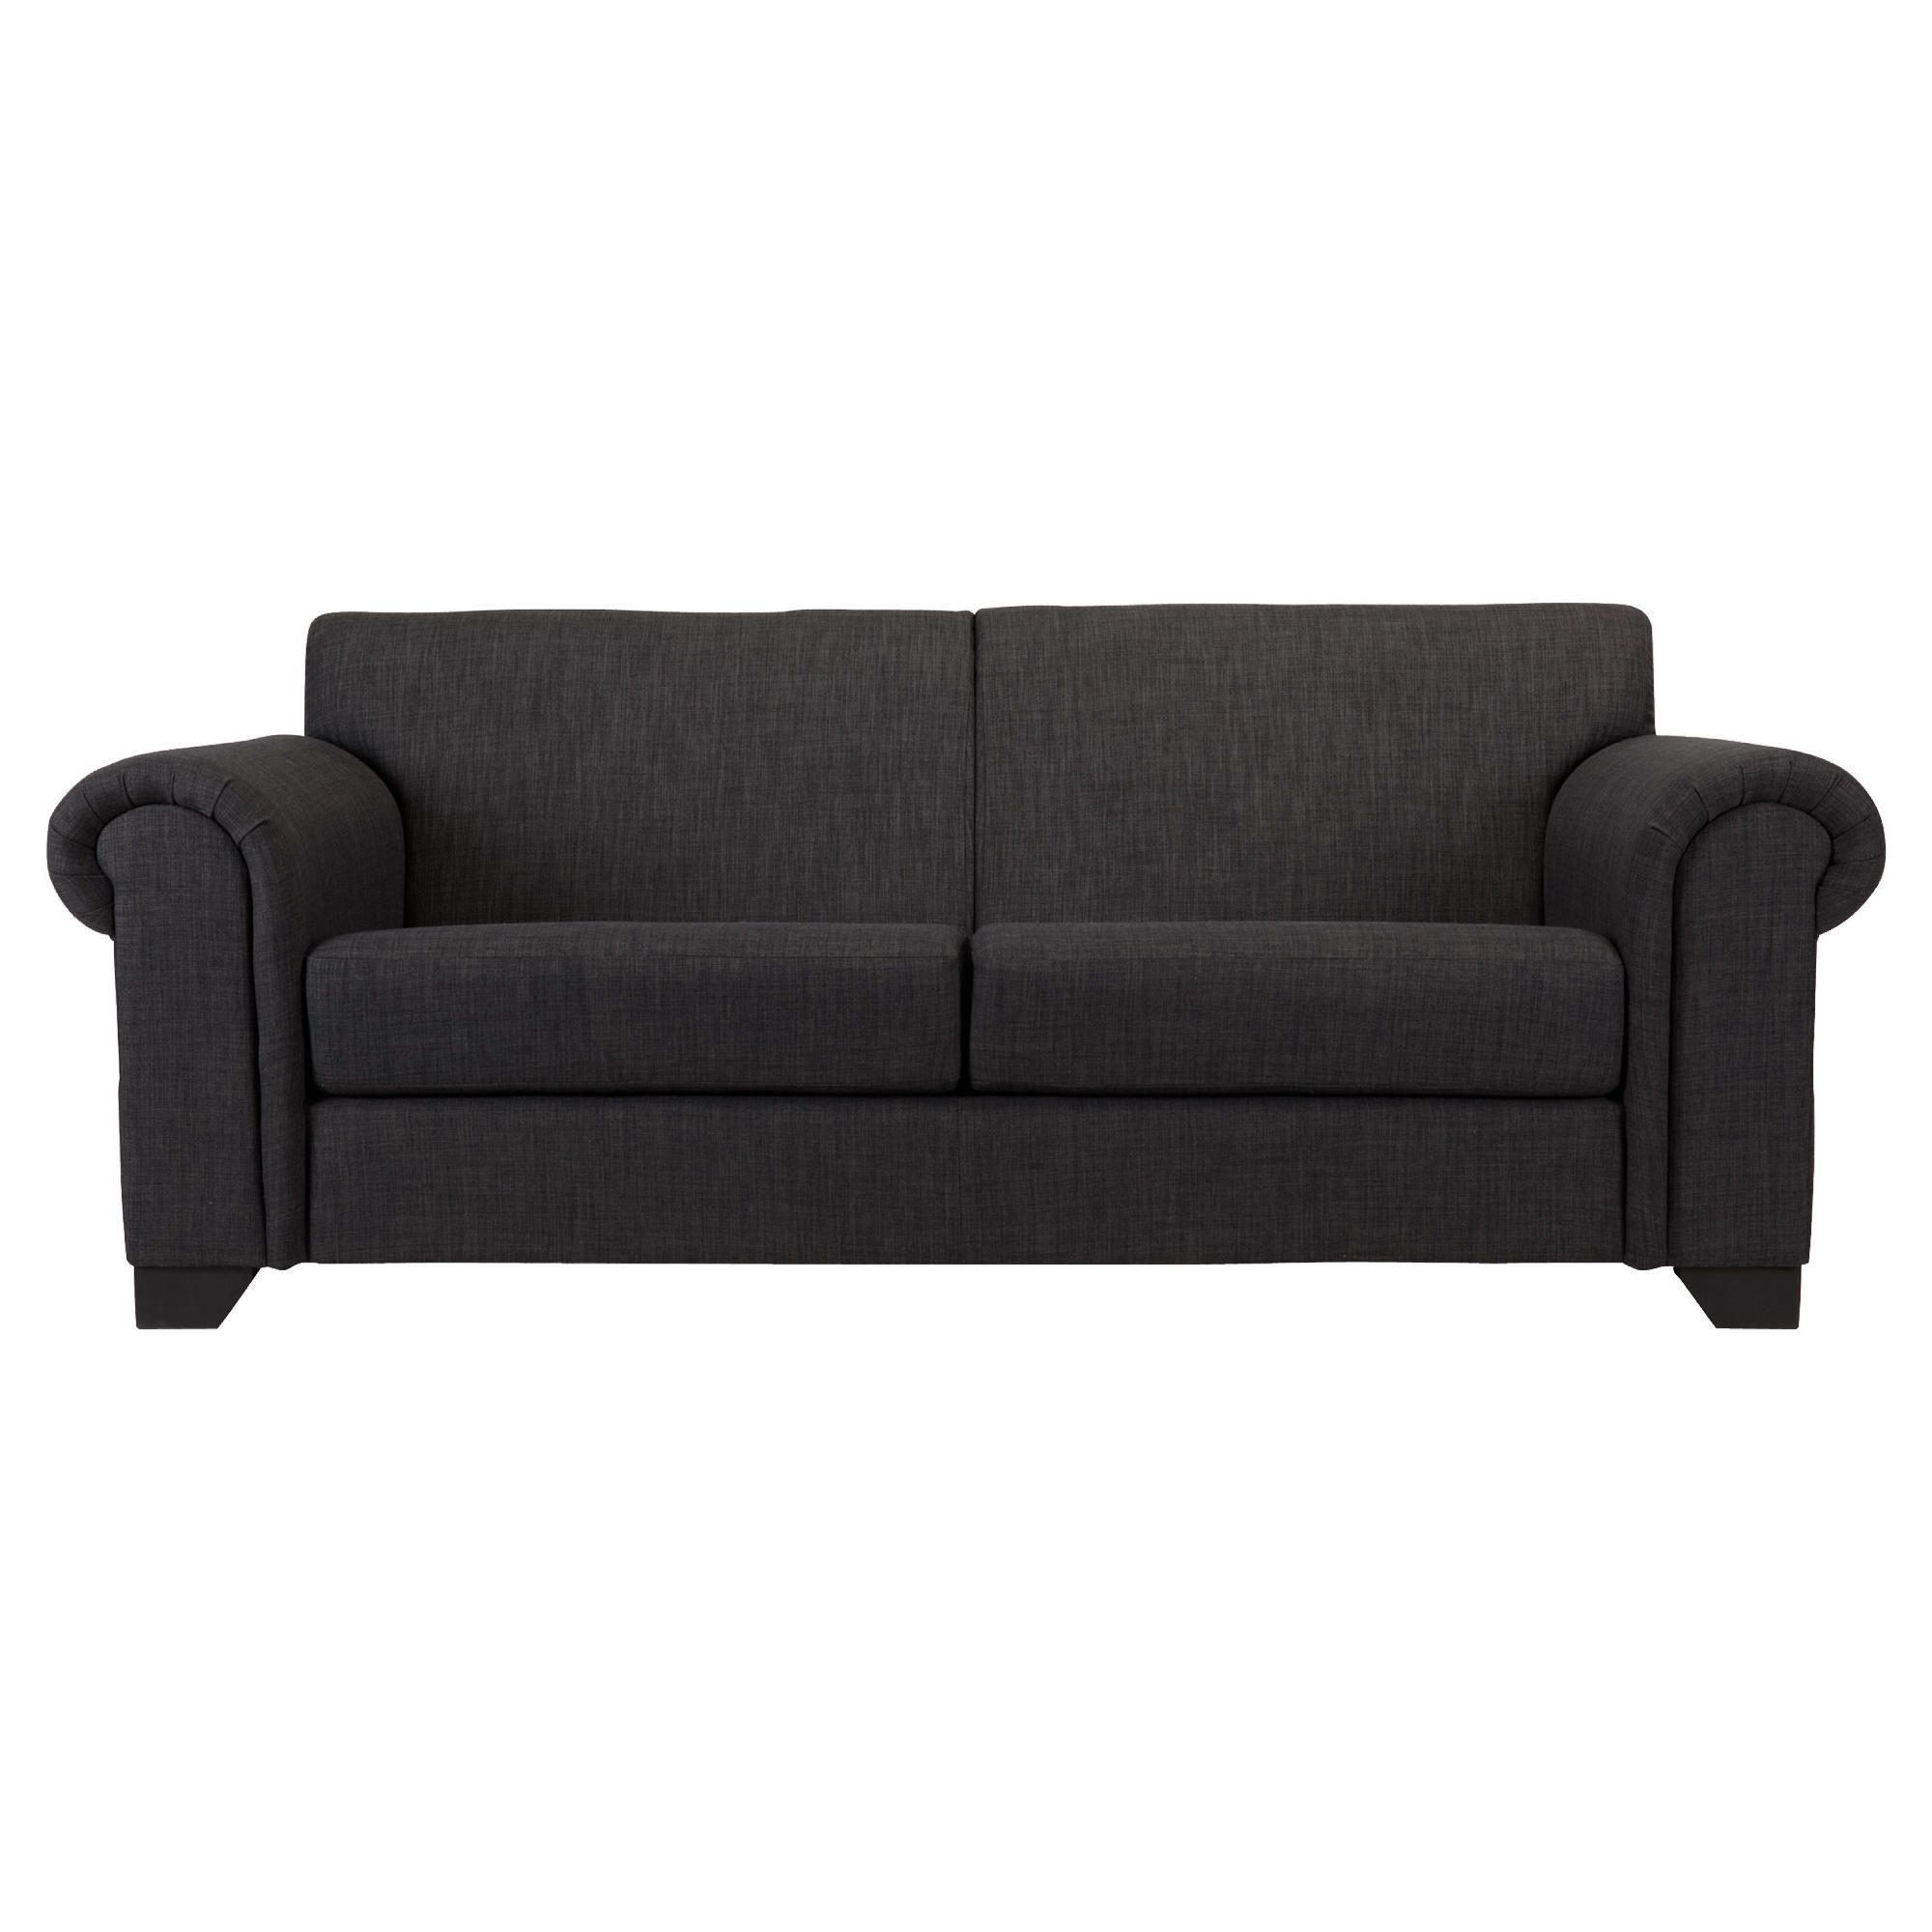 Chester fabric medium sofa charcoal at Tesco Direct